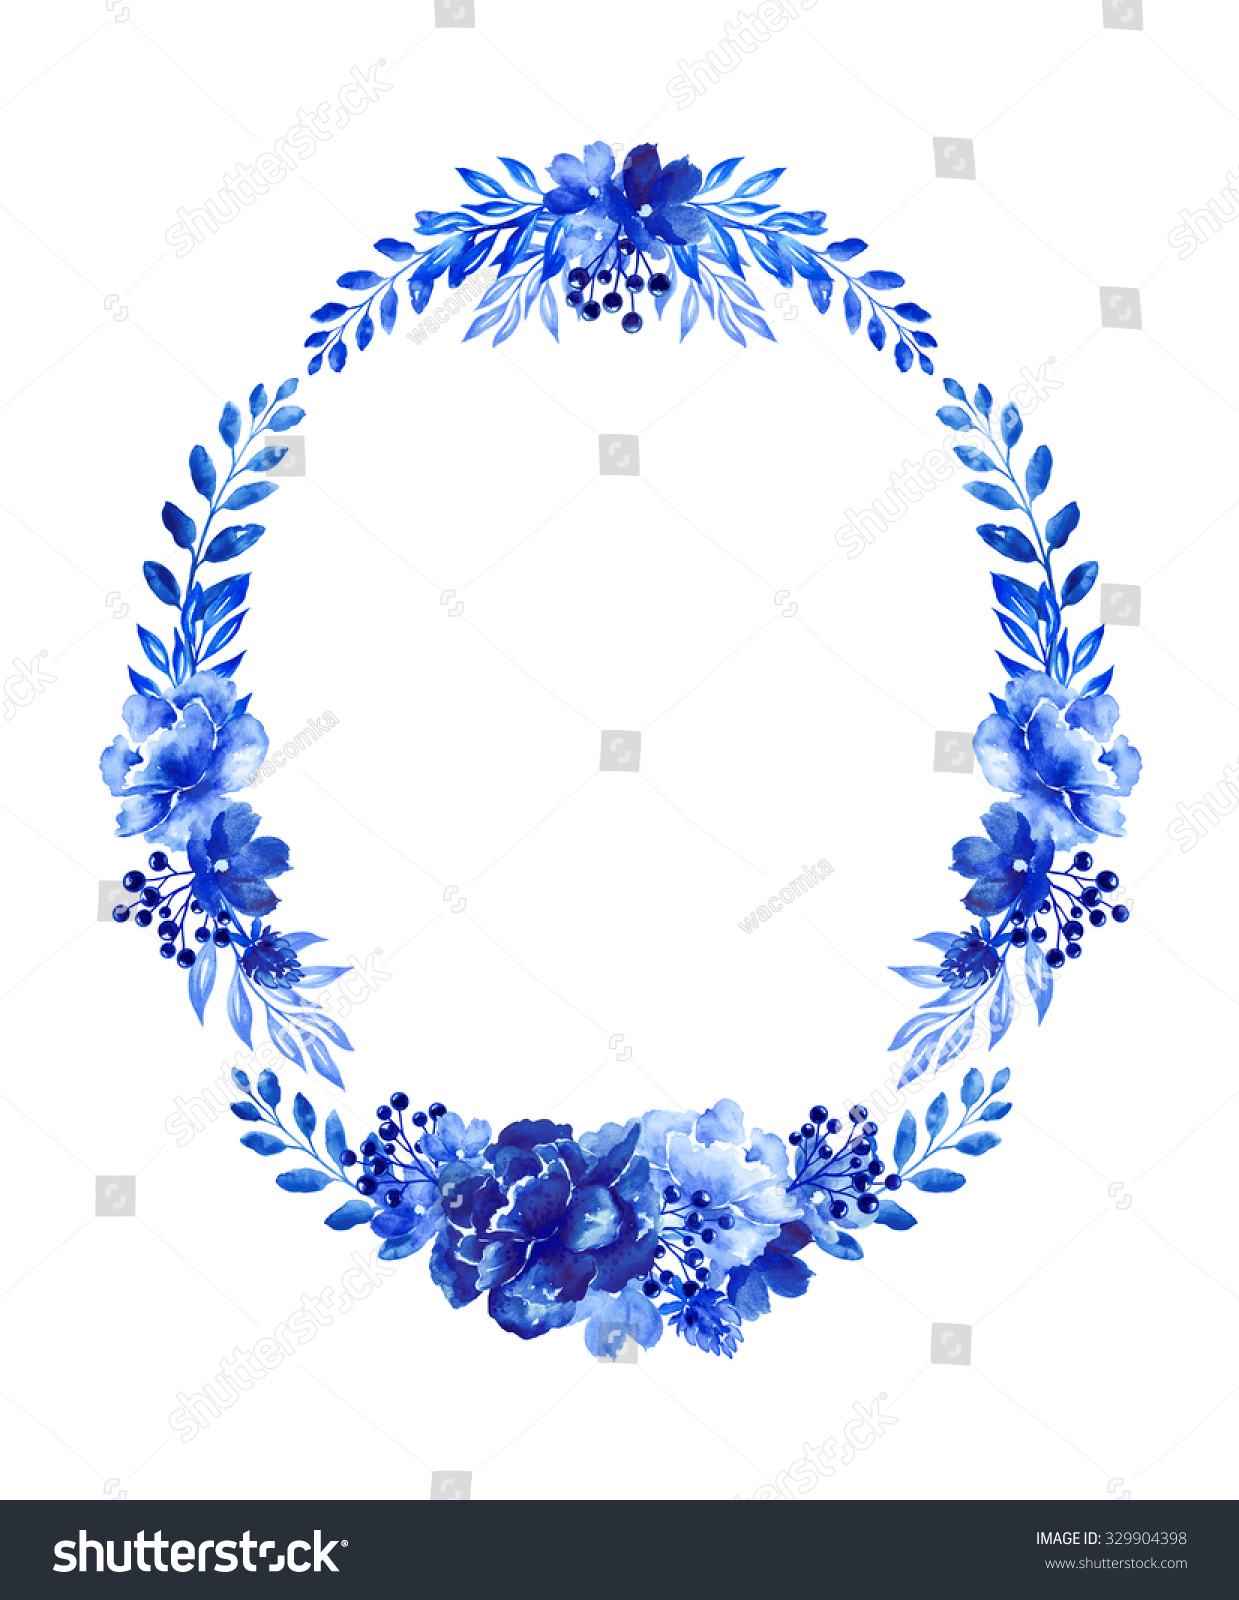 Oval cobalt blue floral wreath flower stock illustration 329904398 oval cobalt blue floral wreath flower arrangement decorative design elements watercolor illustration isolated izmirmasajfo